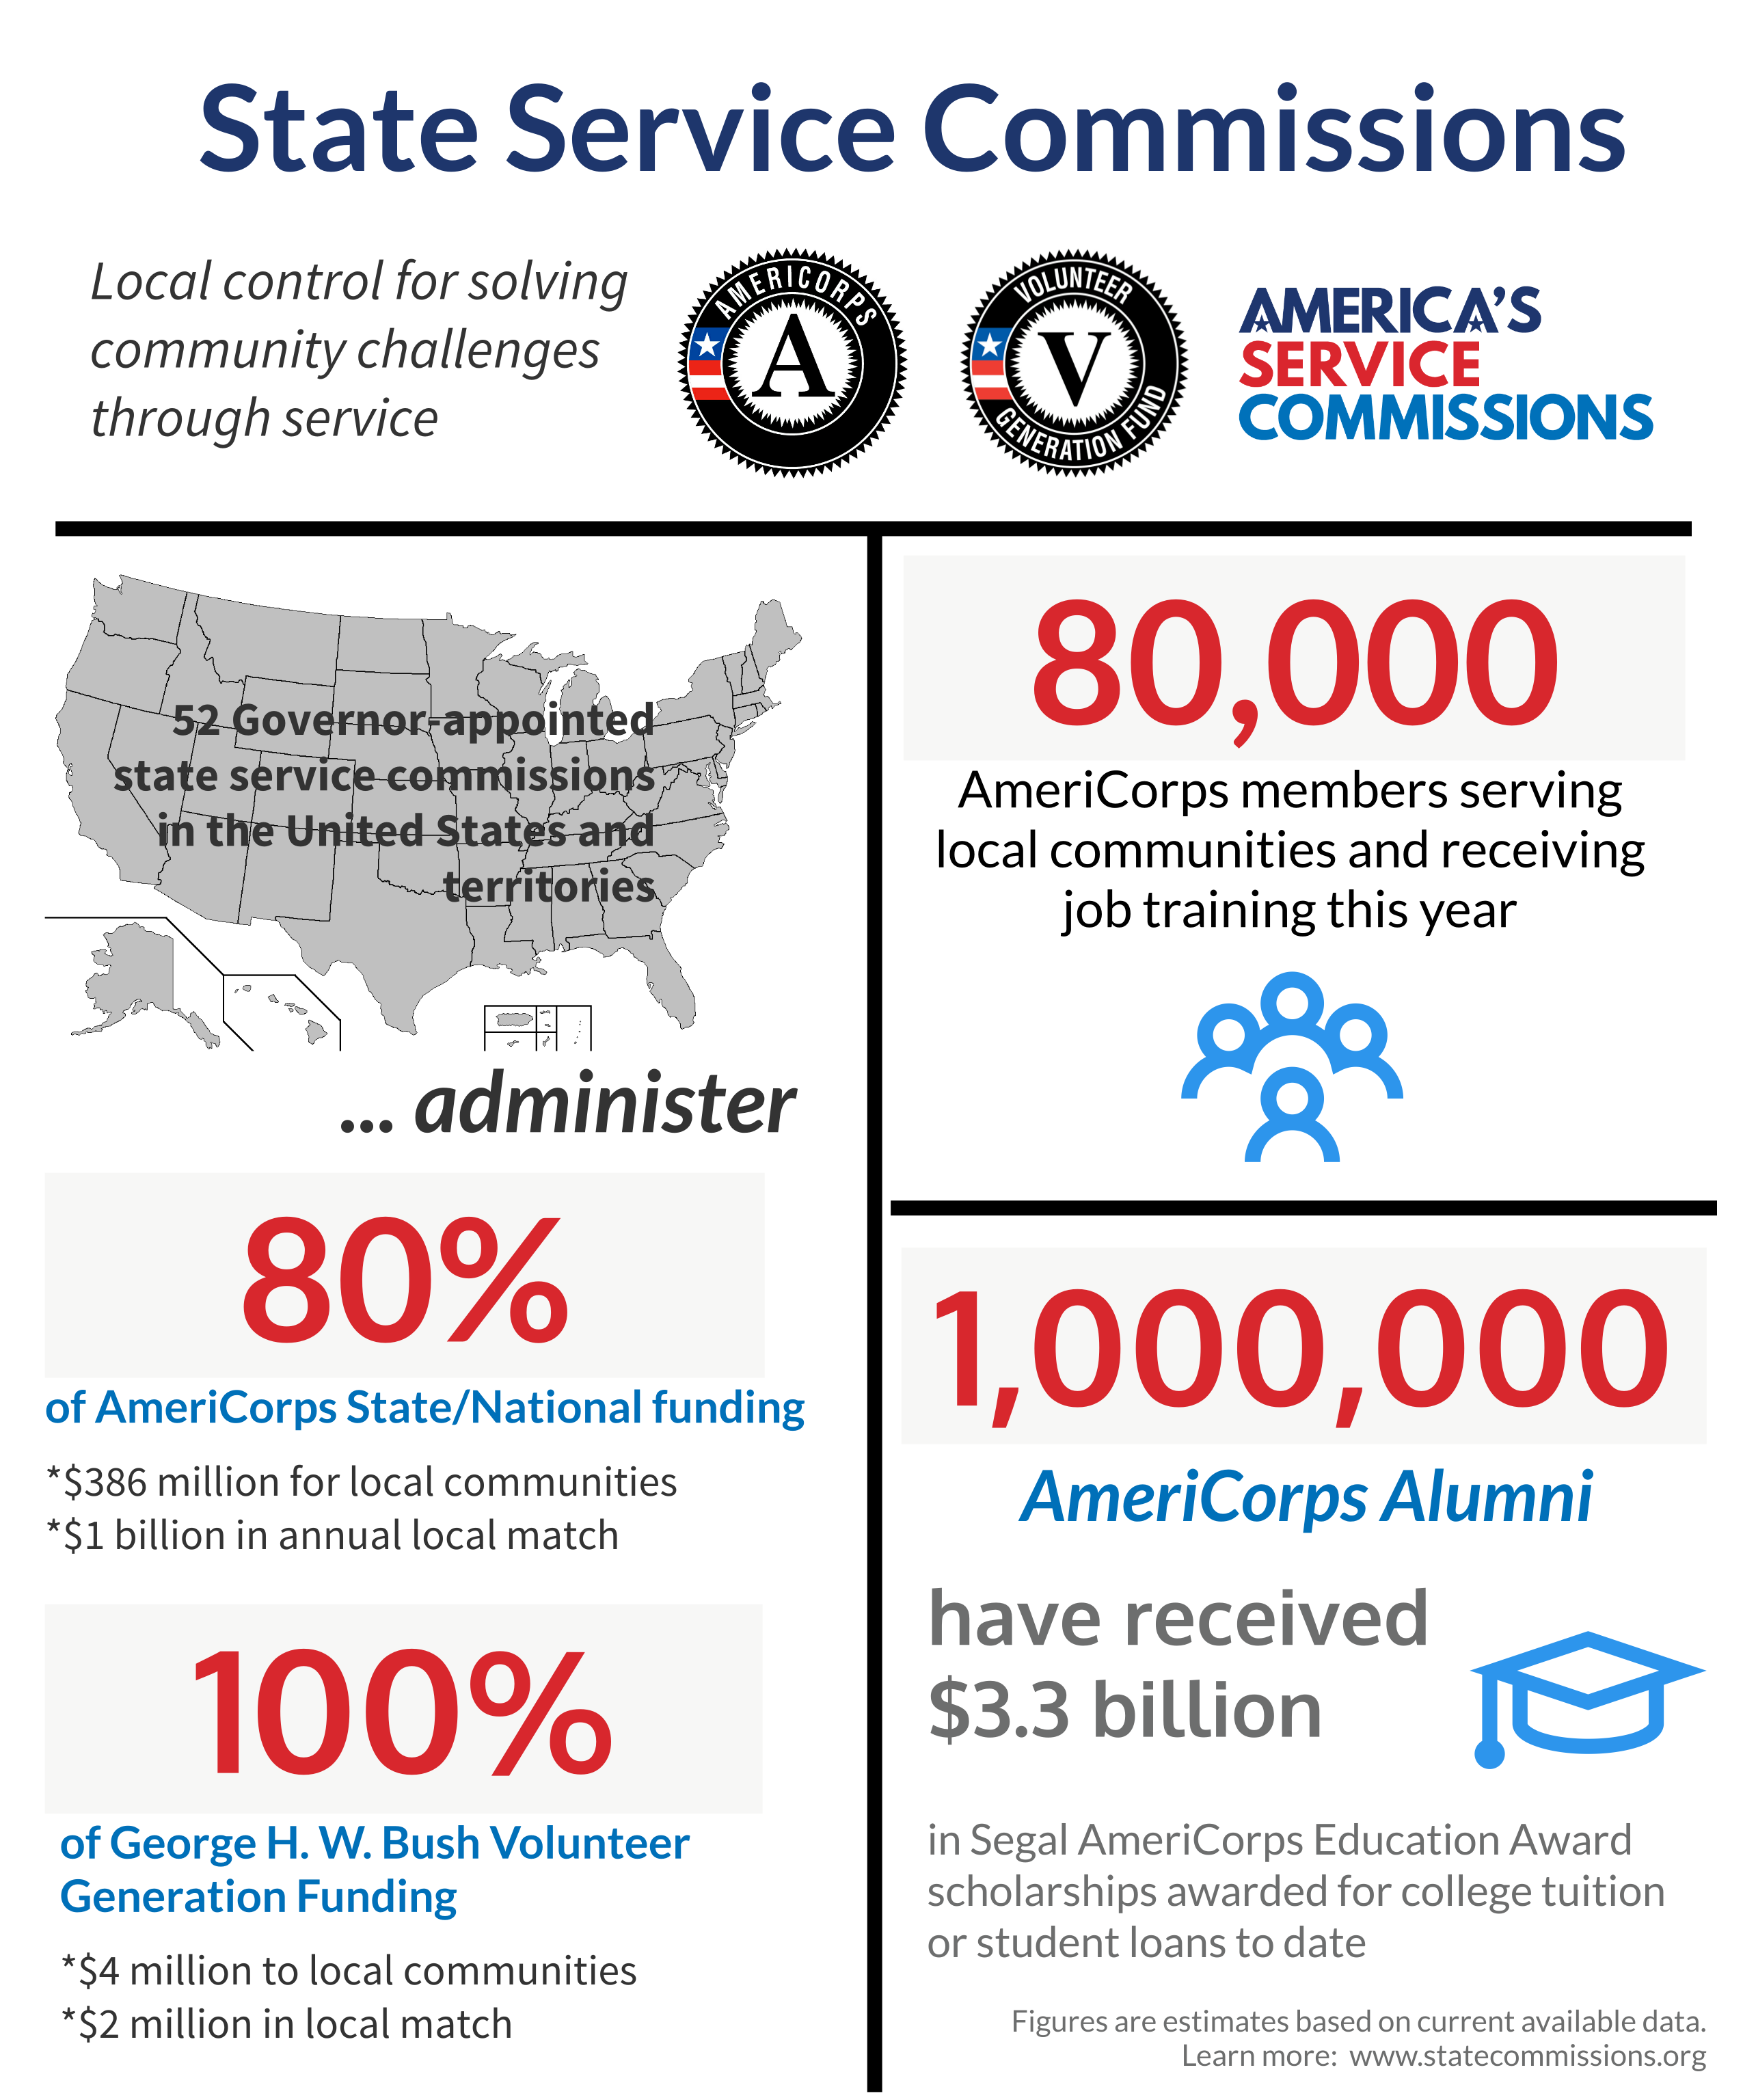 ASC AmeriCorps State Infographic (2017)